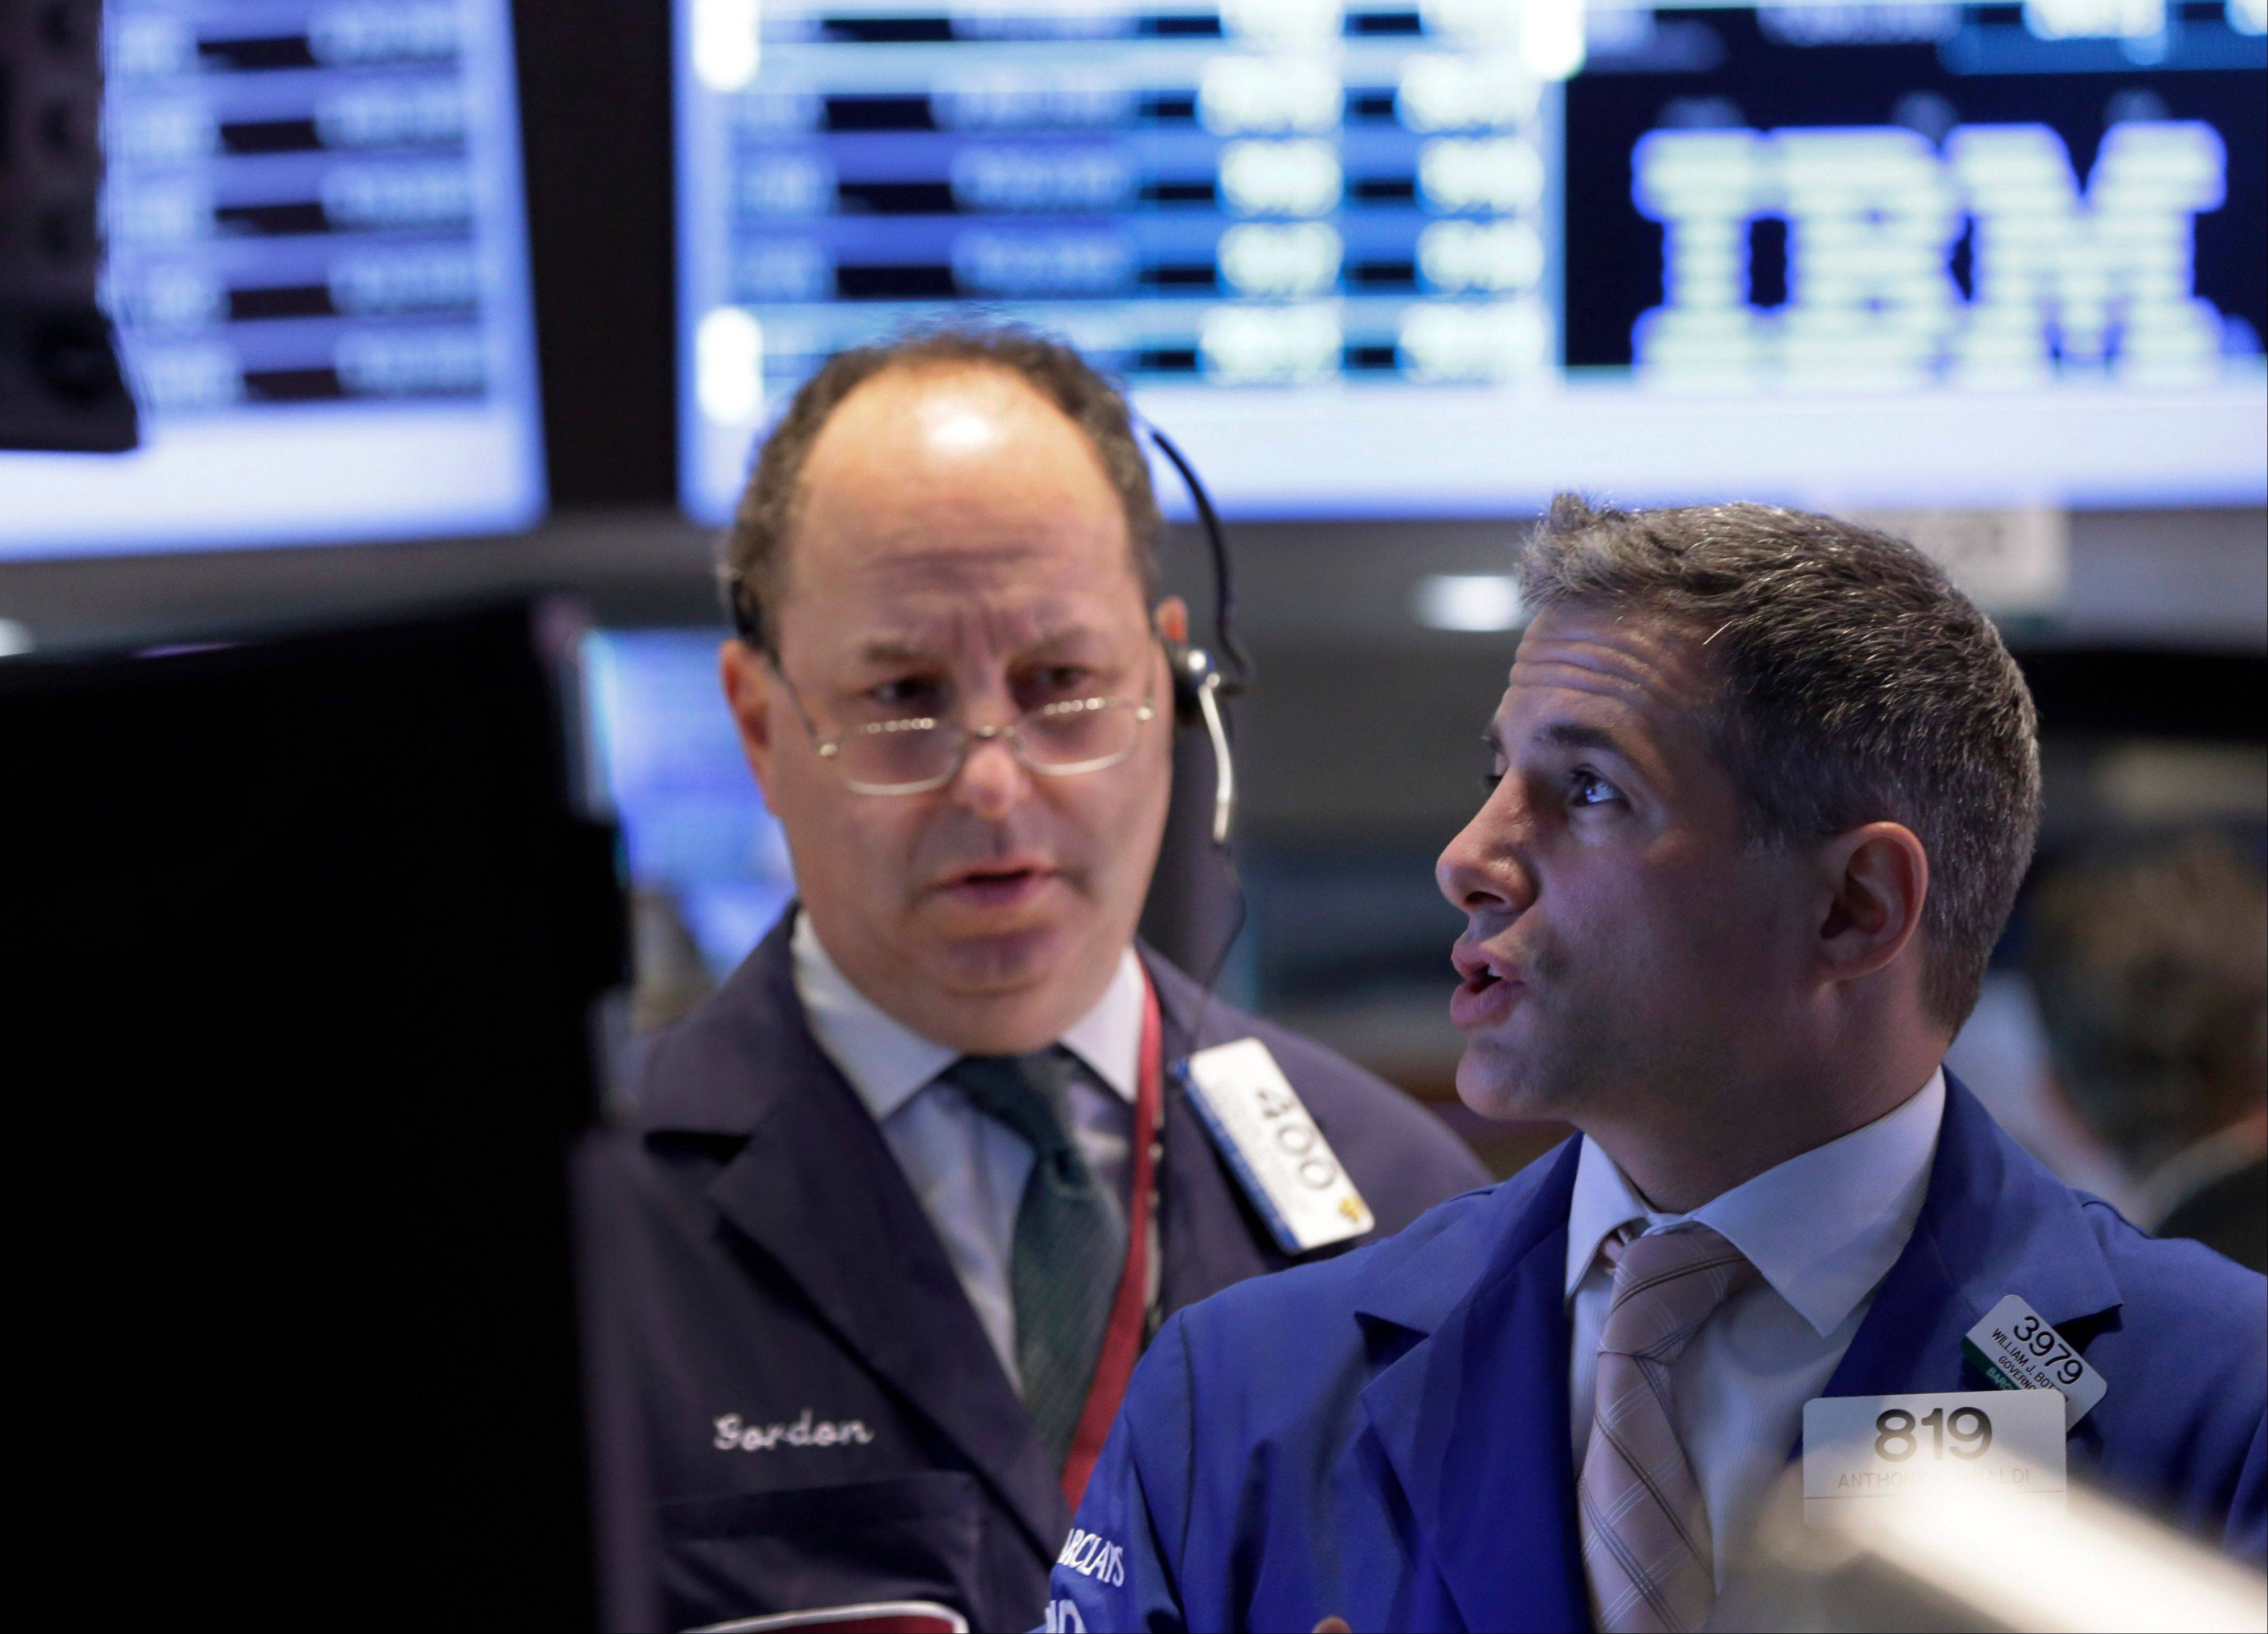 U.S. stocks fell, with the Dow Jones Industrial Average posting its first three-day losing streak this year, as investors weighed prospects for economic growth and the pace of Federal Reserve stimulus measures.